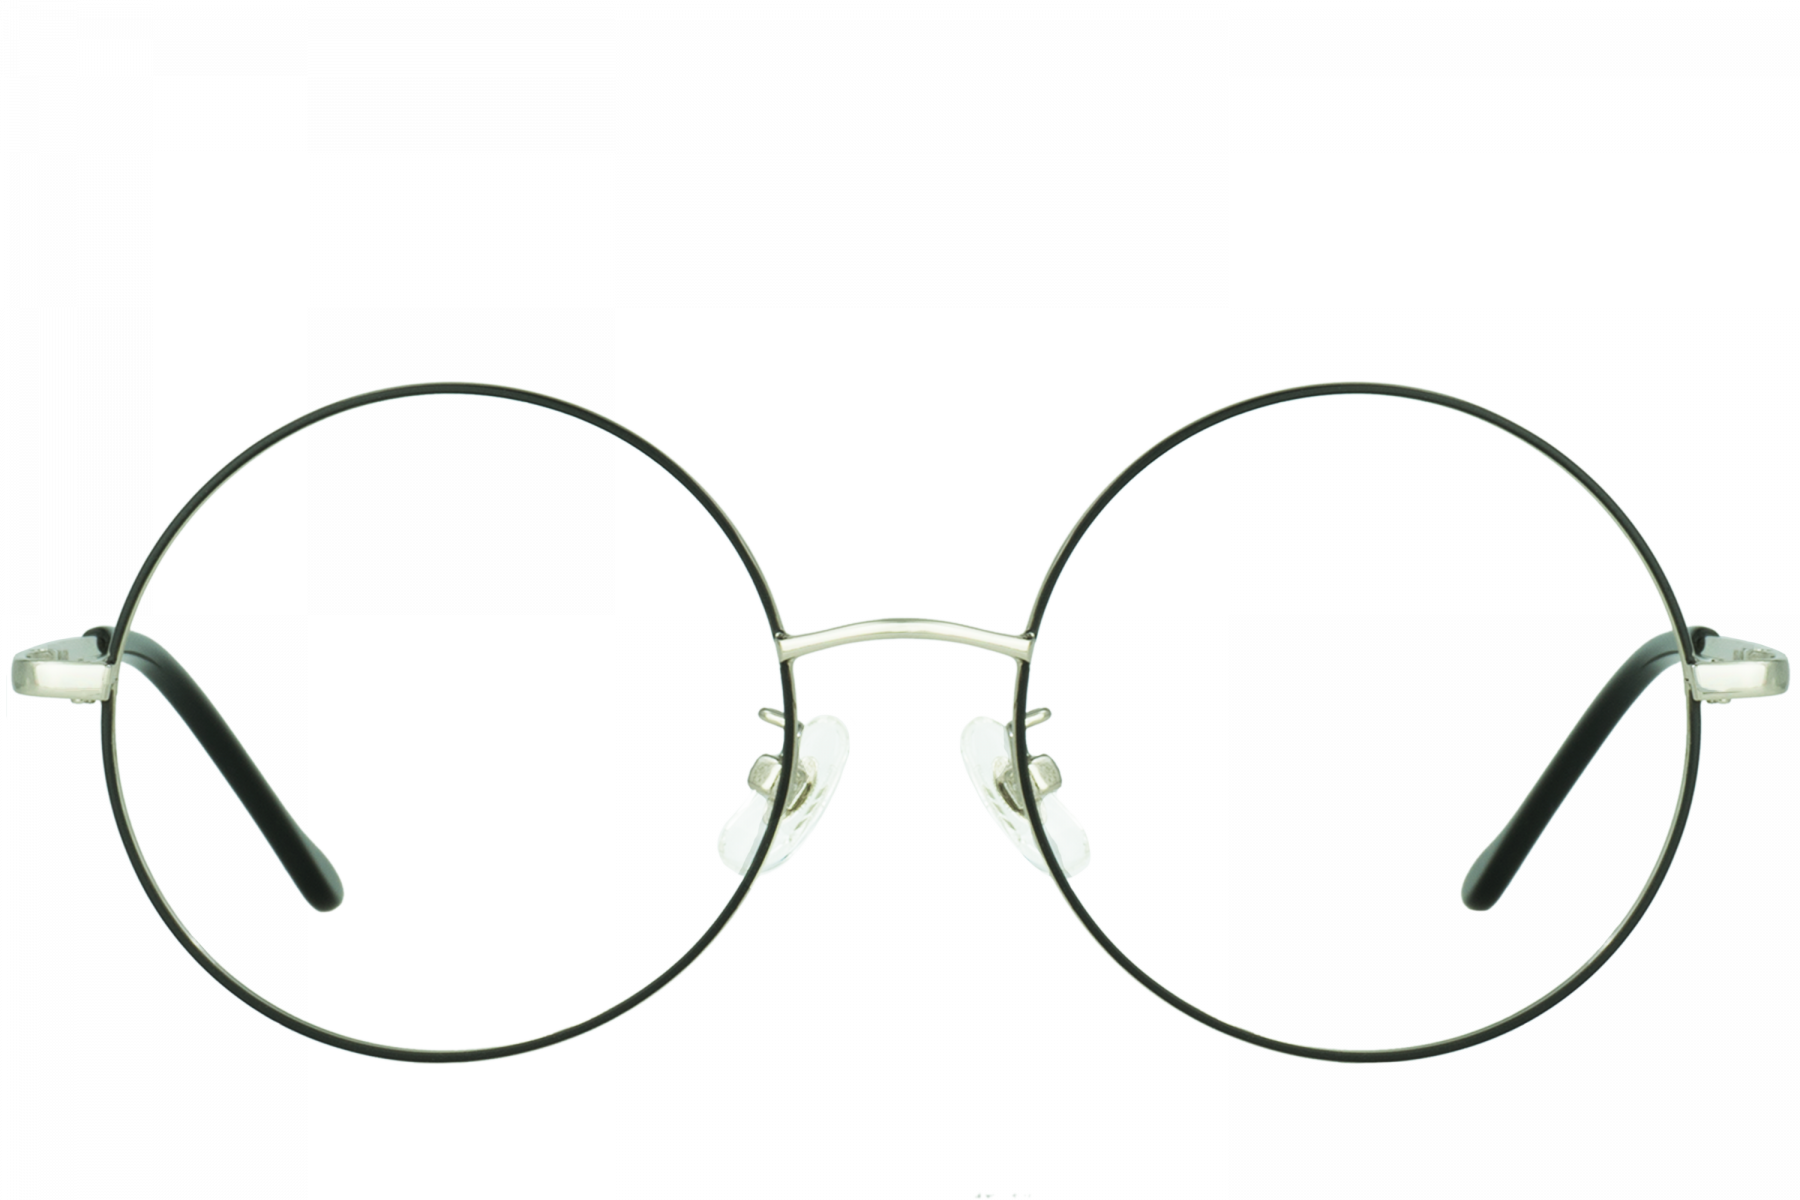 Round glasses png. Images free download